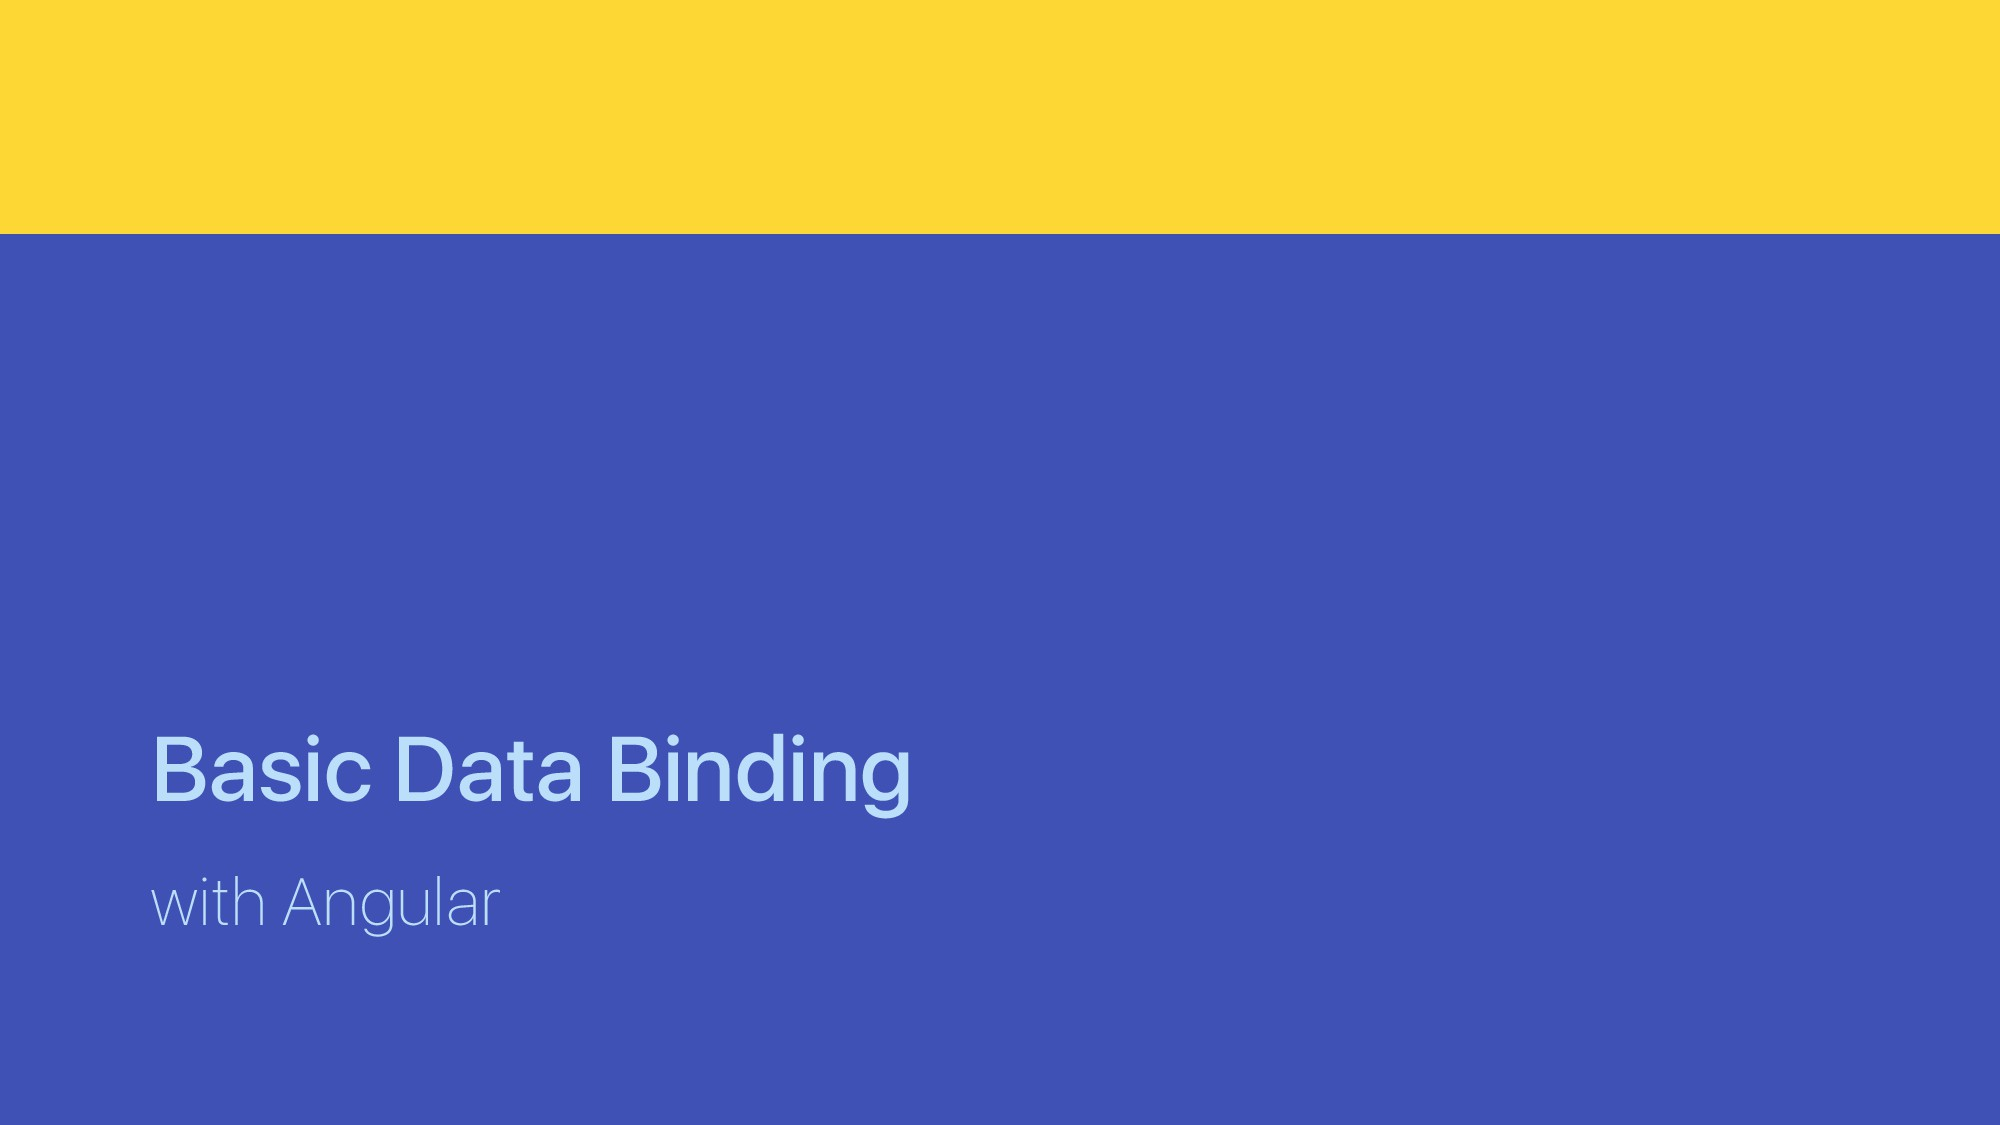 Basic Data Binding with Angular